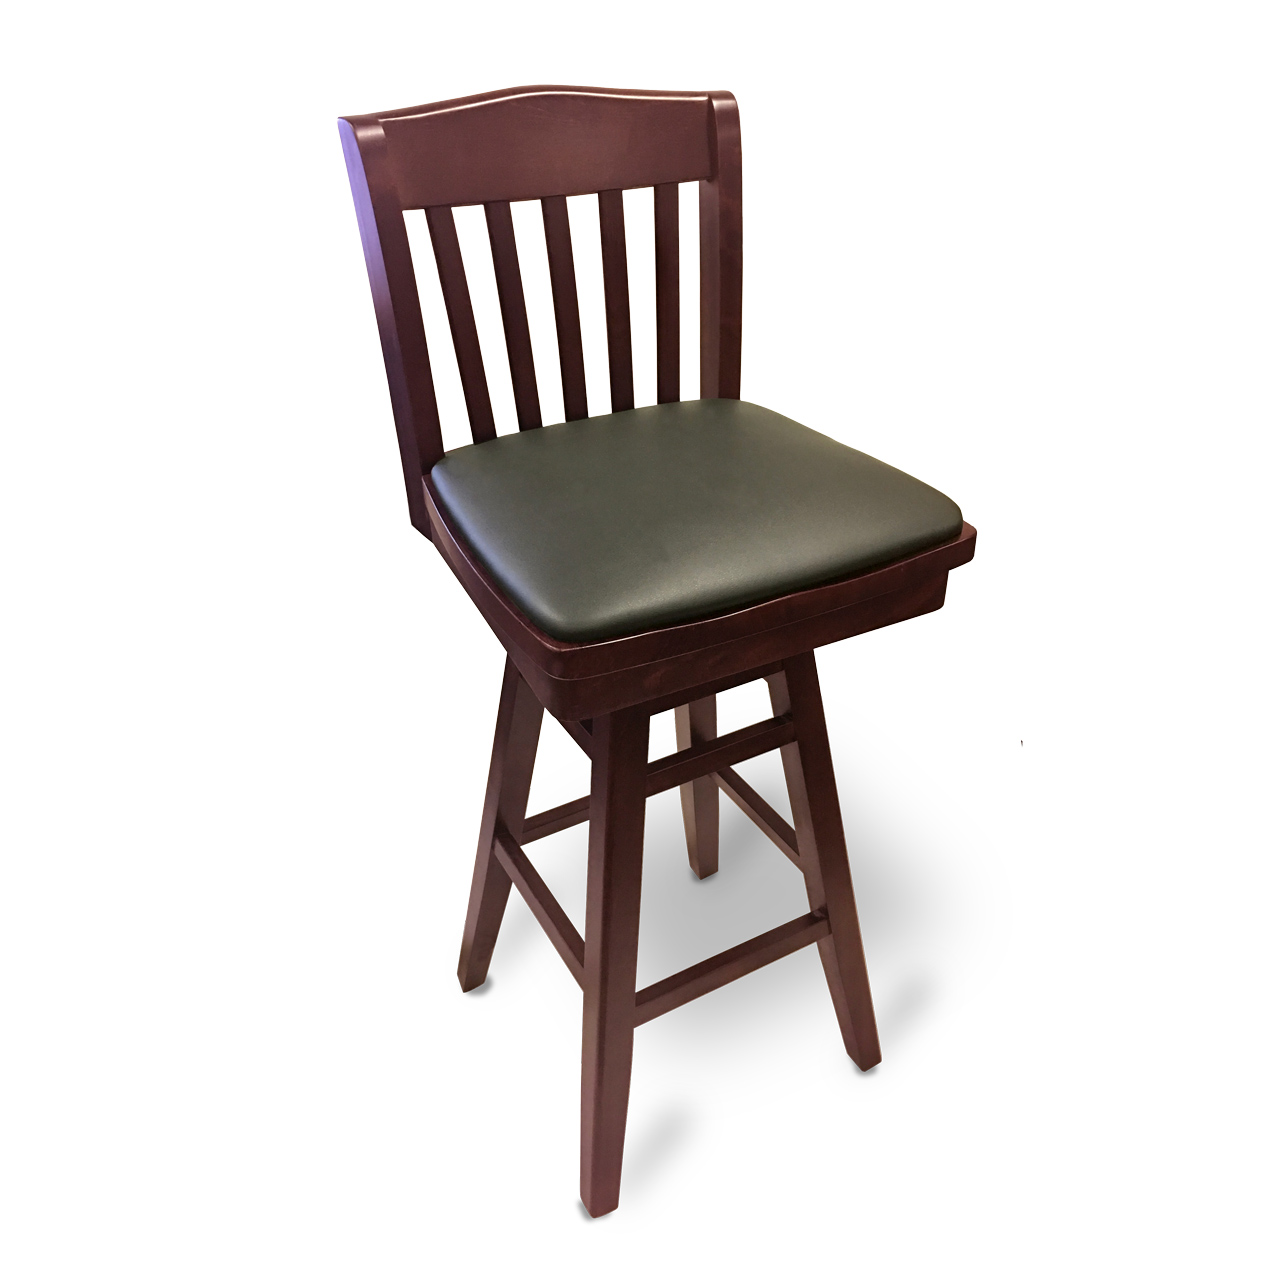 JustChair Manufacturing W36430-SWL-PS-GR3 bar stool, swivel, indoor